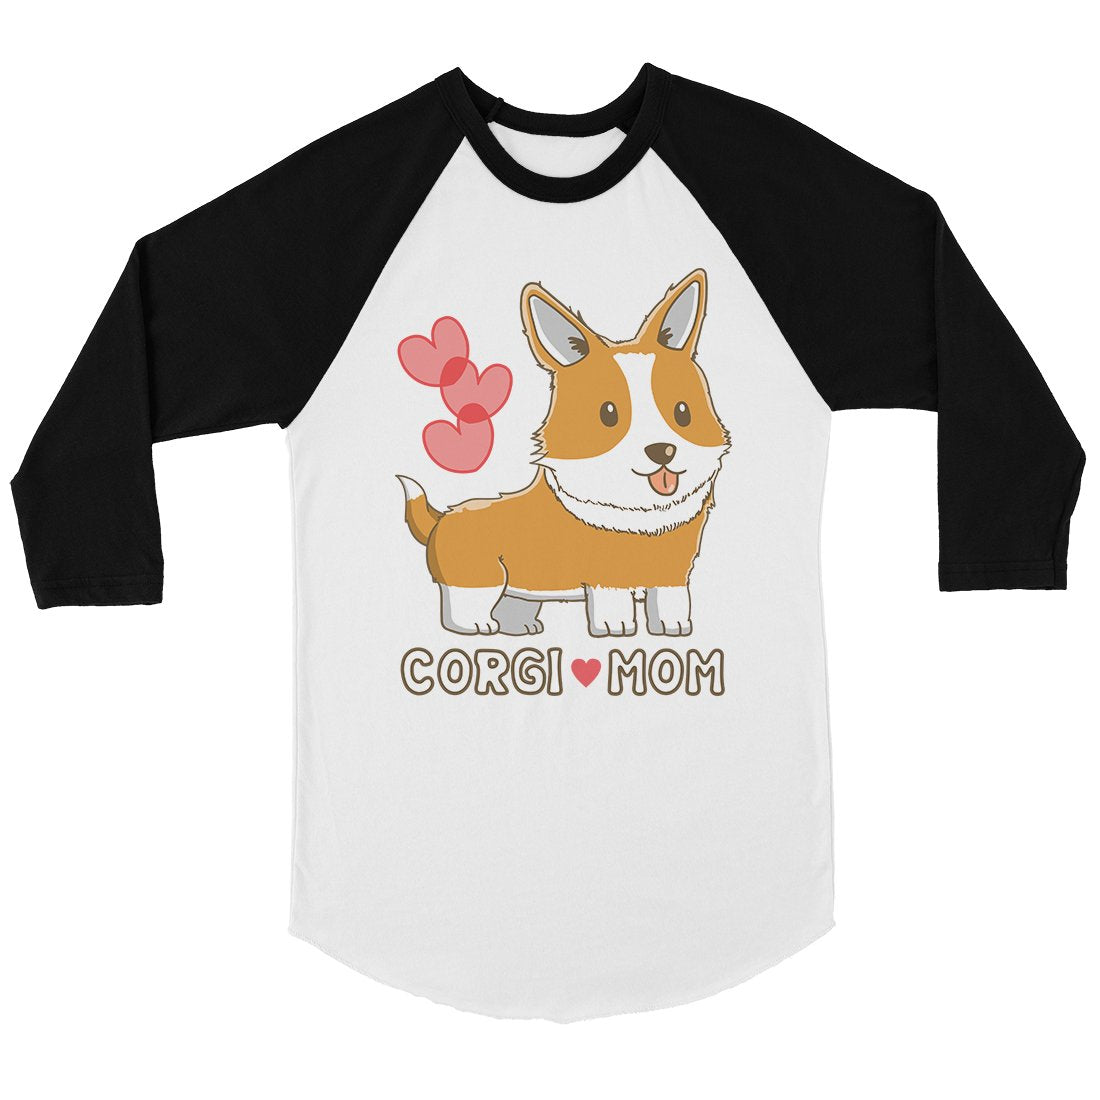 Corgi Mom Womens Baseball Tee Cute Raglan Shirt Corgi Lover Gifts